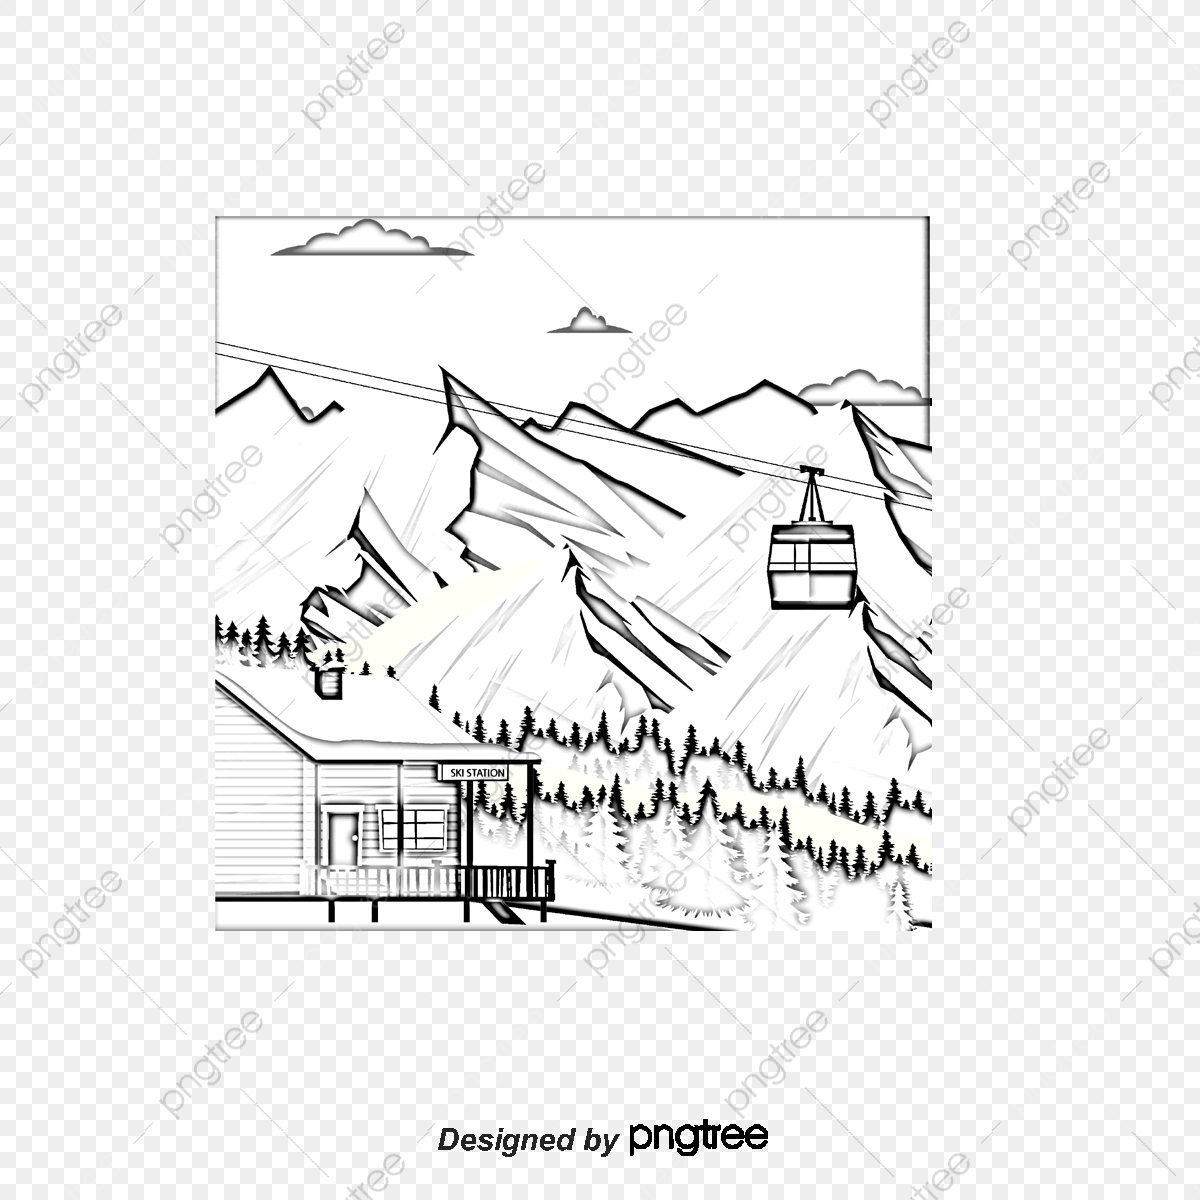 commercial use resource  upgrade to premium plan and get license  authorization upgradenow · hand painted plateau snow mountain